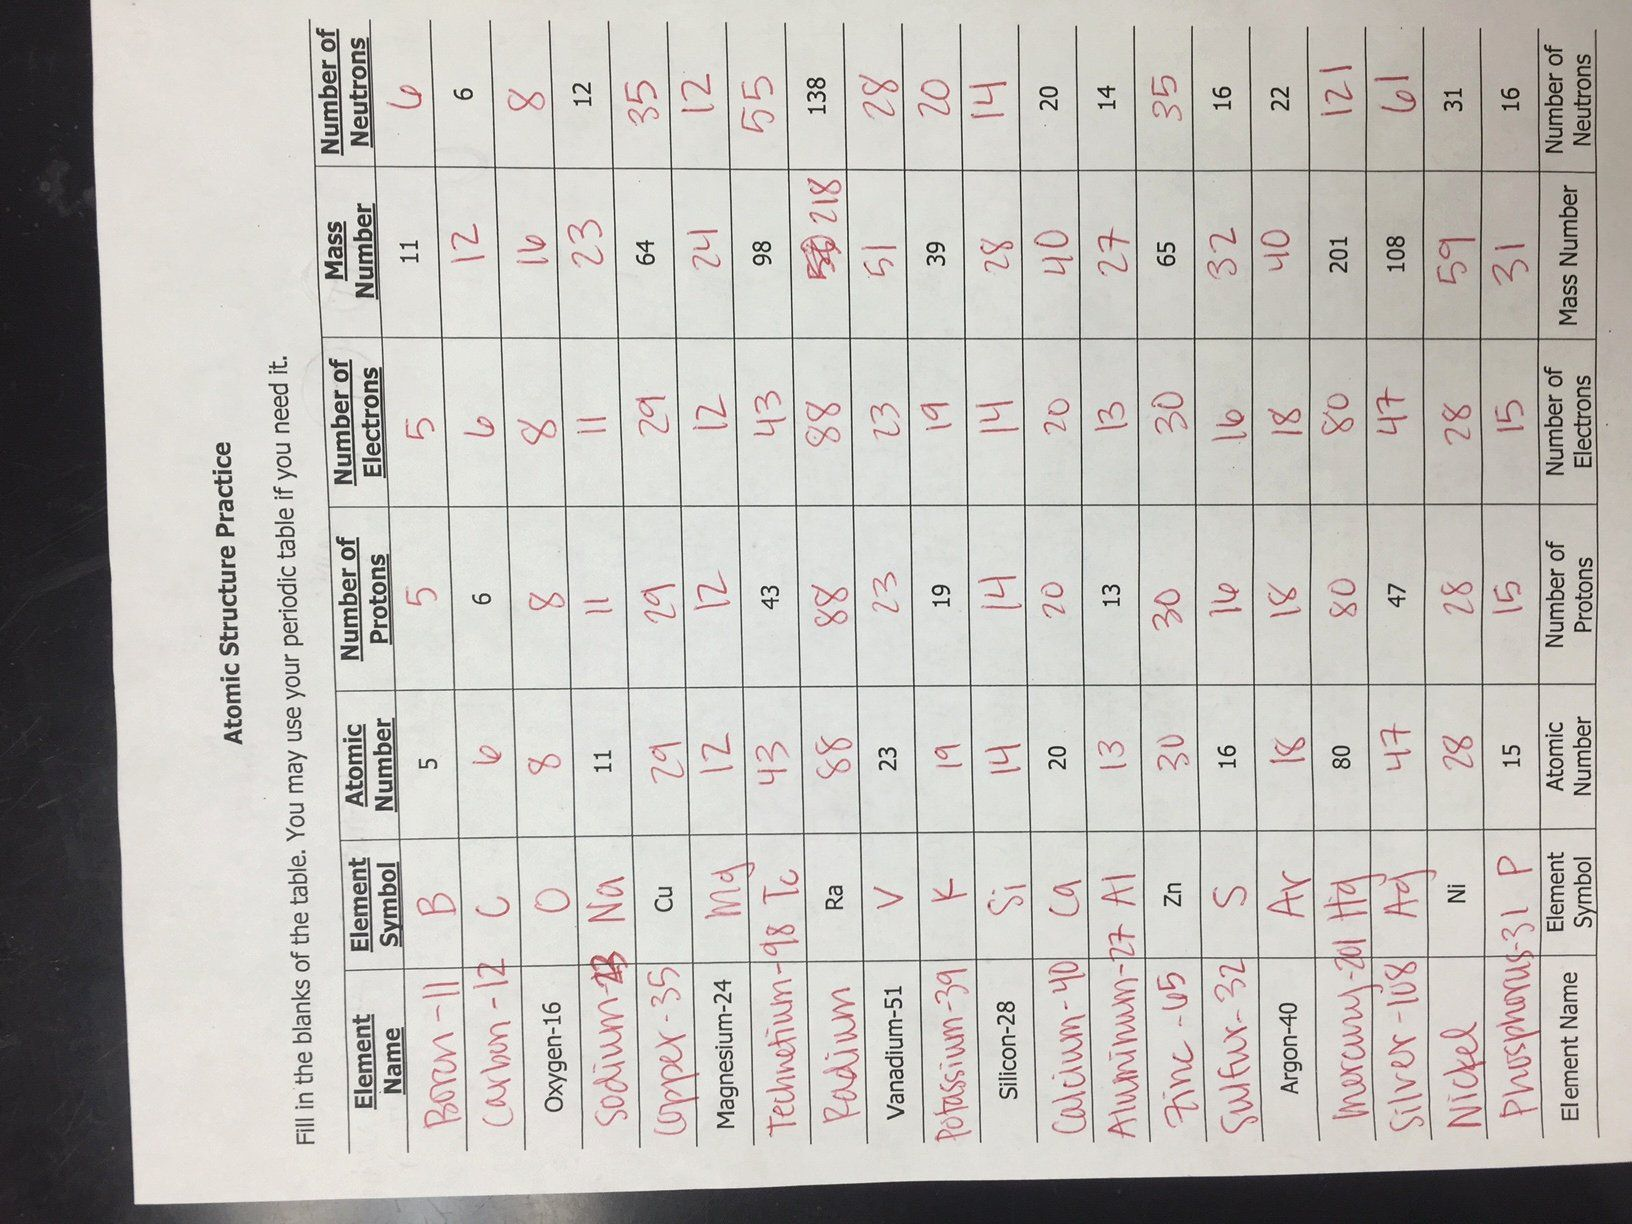 Atoms Ions And Isotopes Worksheet Answers